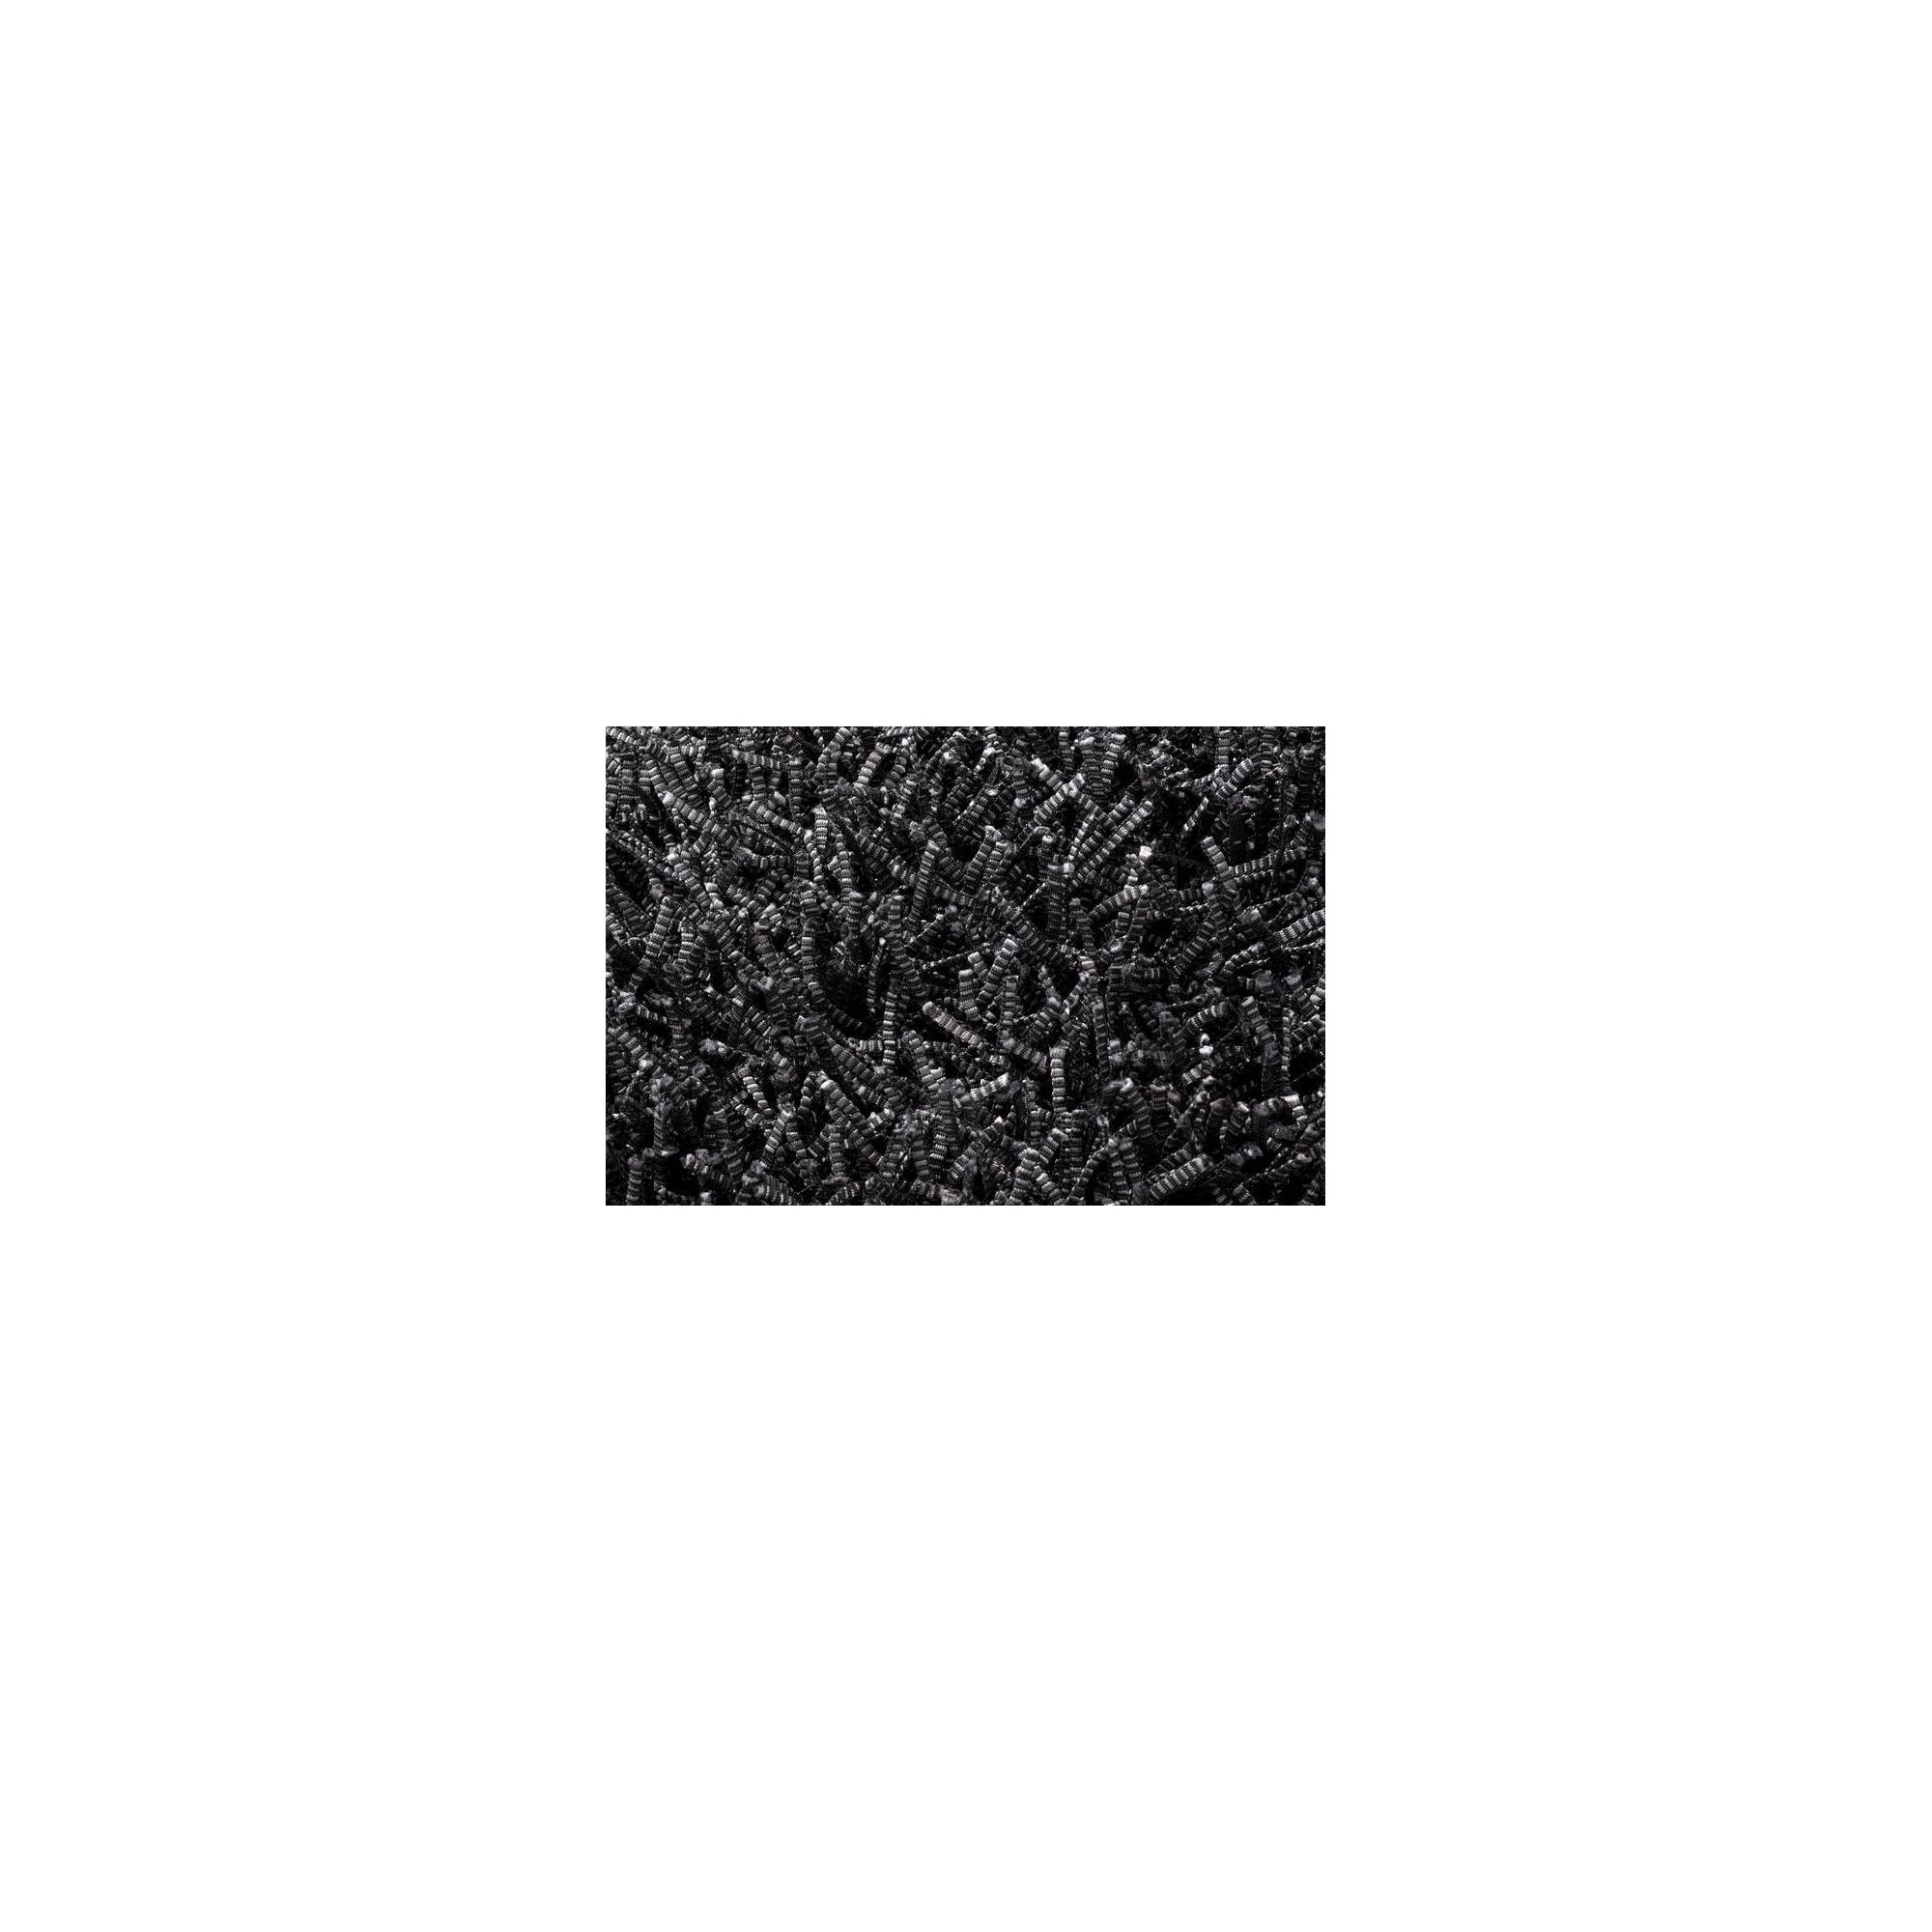 Linie Design Electric Black Shag Rug - 300cm x 200cm at Tesco Direct